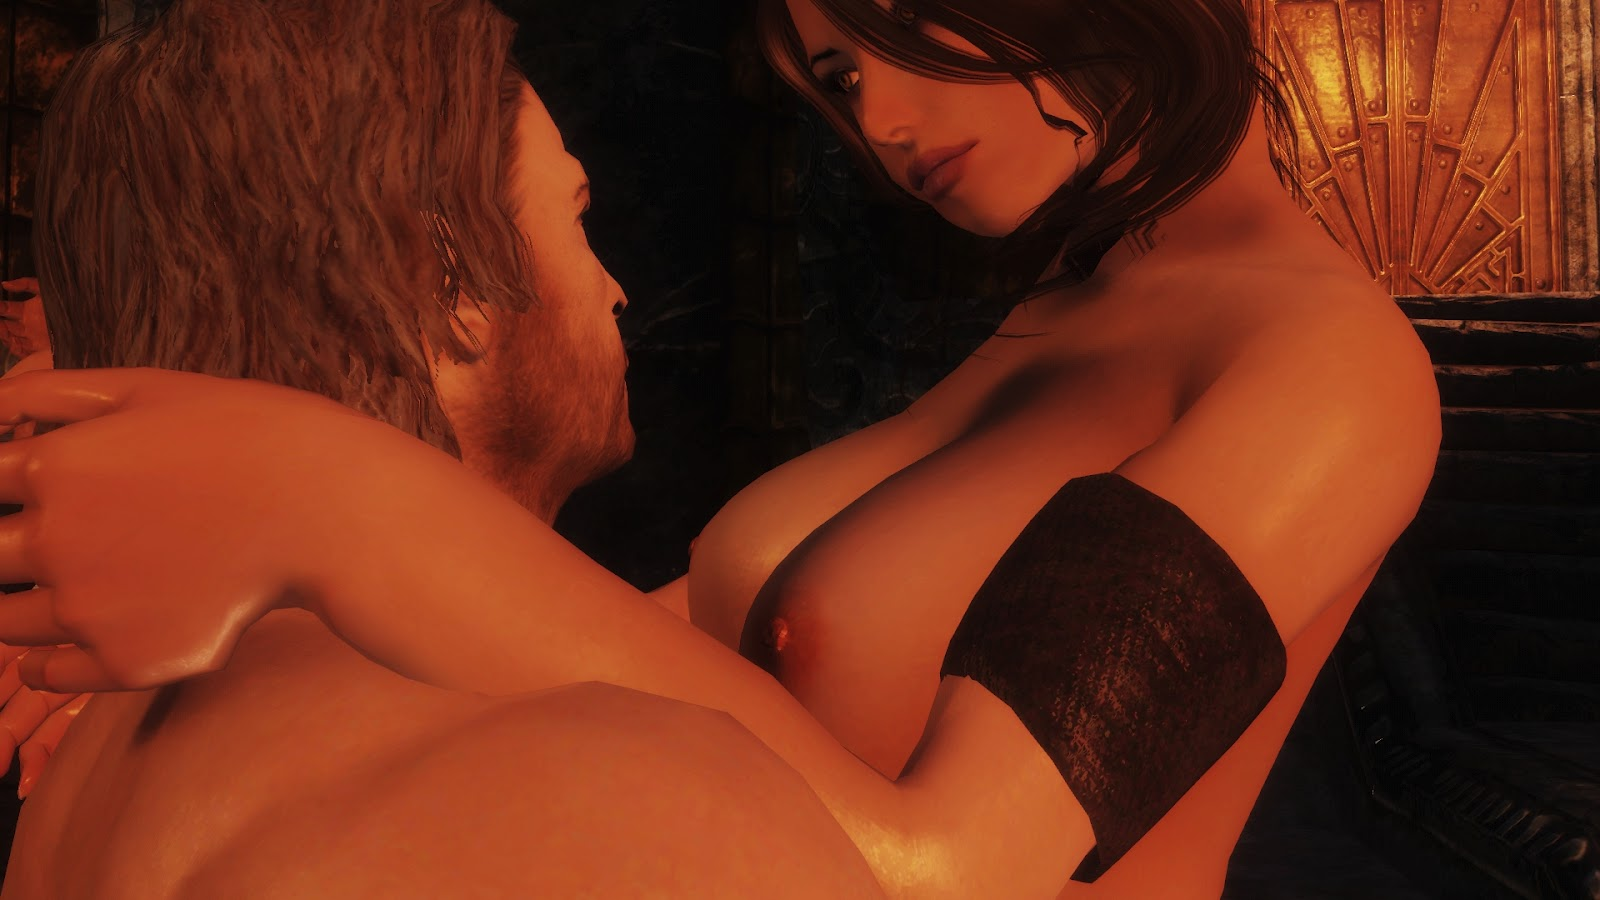 Skyrim adult-only mods sex hardcore pron extreme chick